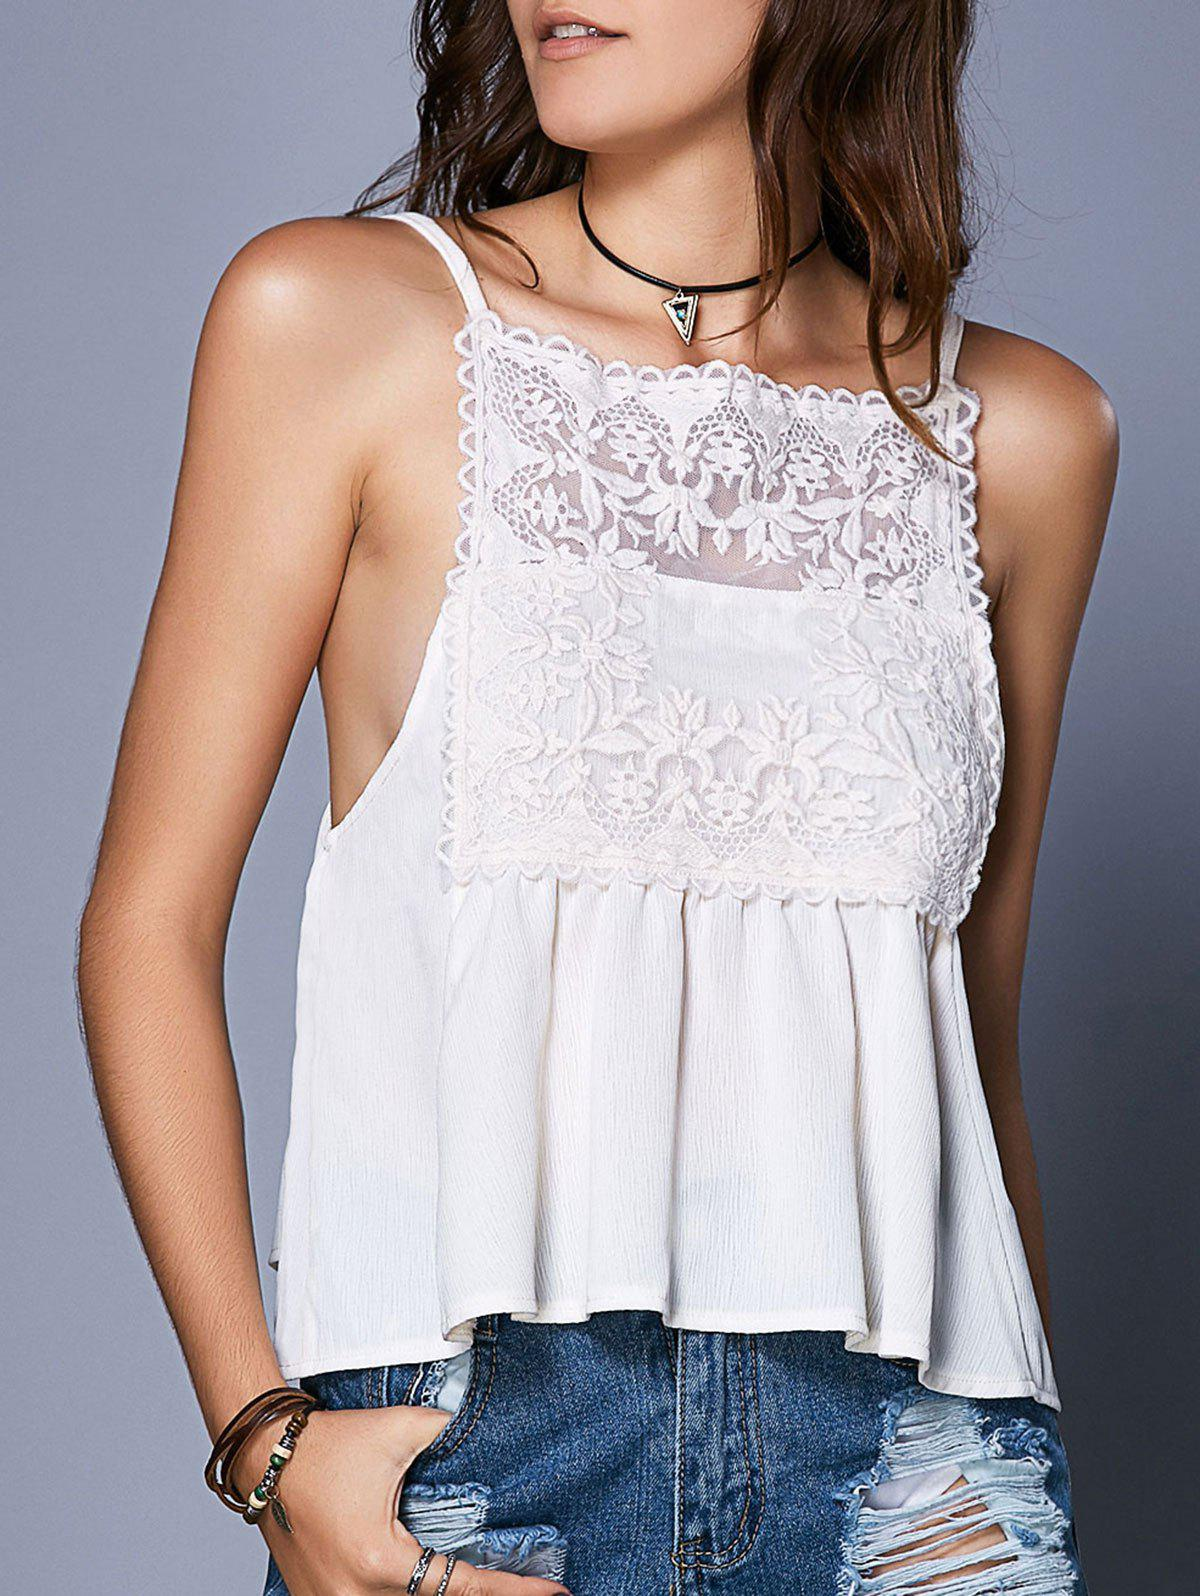 Sweet Spaghetti Strap Openwork Lace See-Through Women's Tank Top